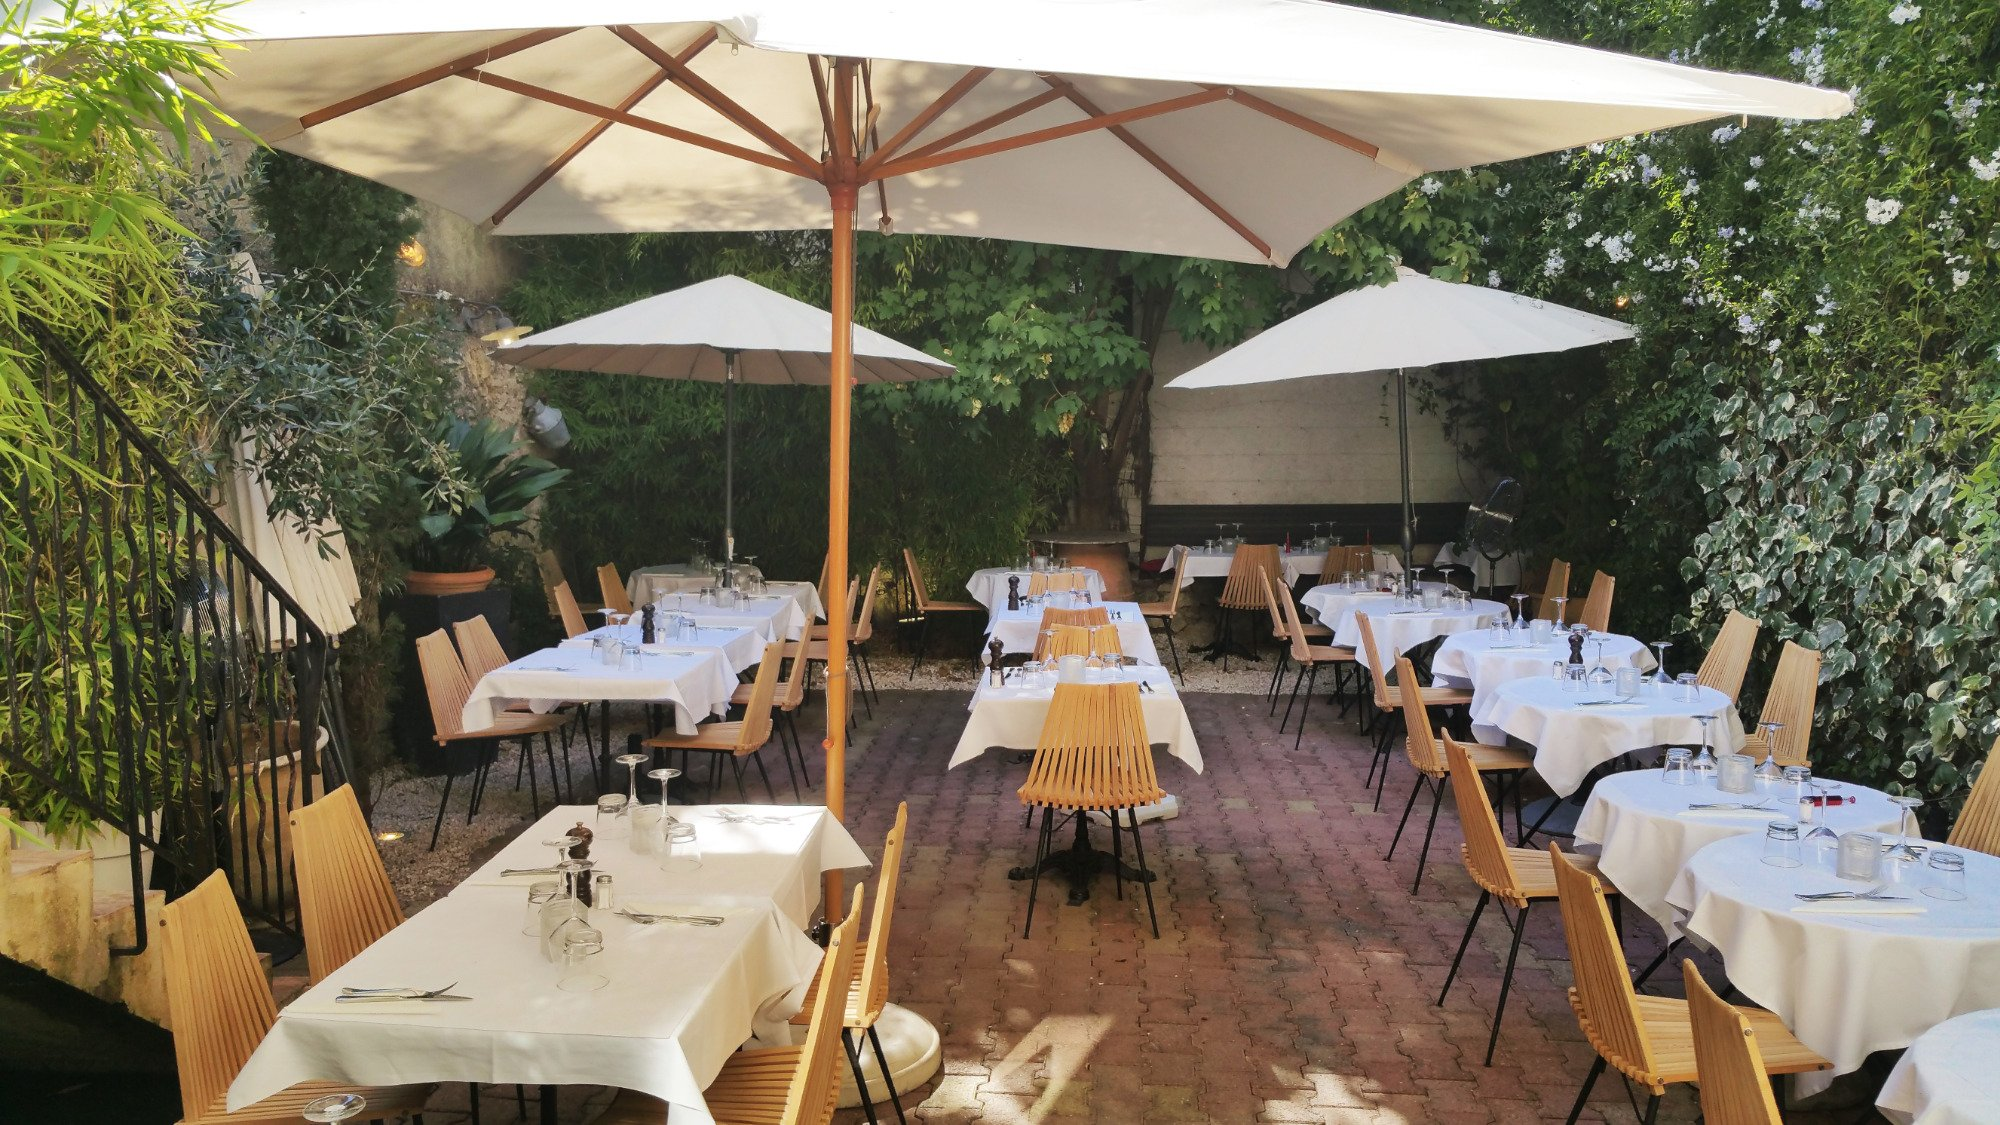 What to do in uzes tripadvisor for Au petit jardin uzes